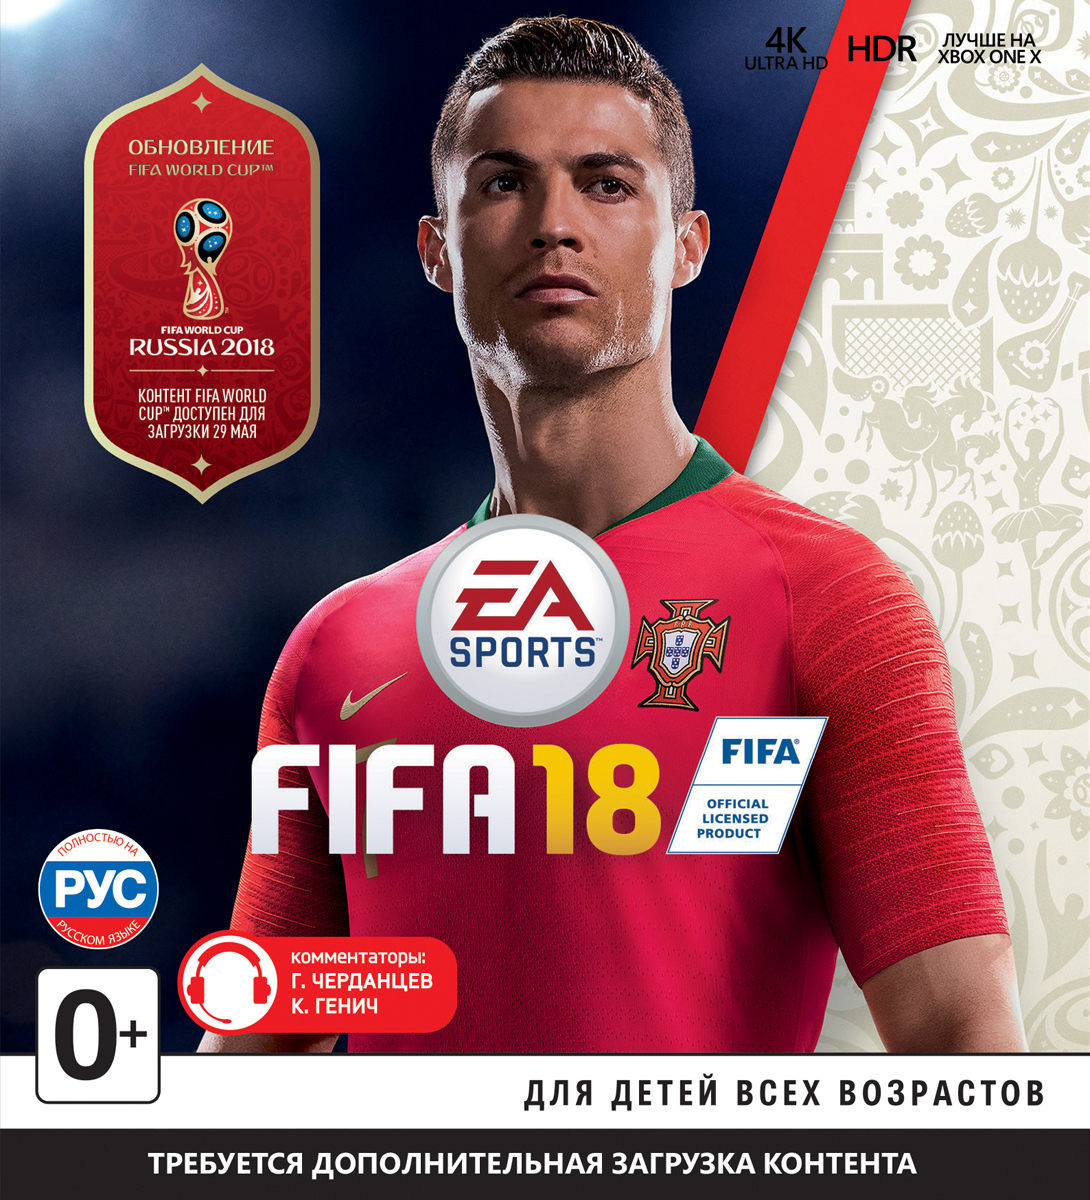 FIFA 18 (Xbox One) значок 2018 fifa world cup russia™ 2018 fifa world cup russia™ fi029dubags7